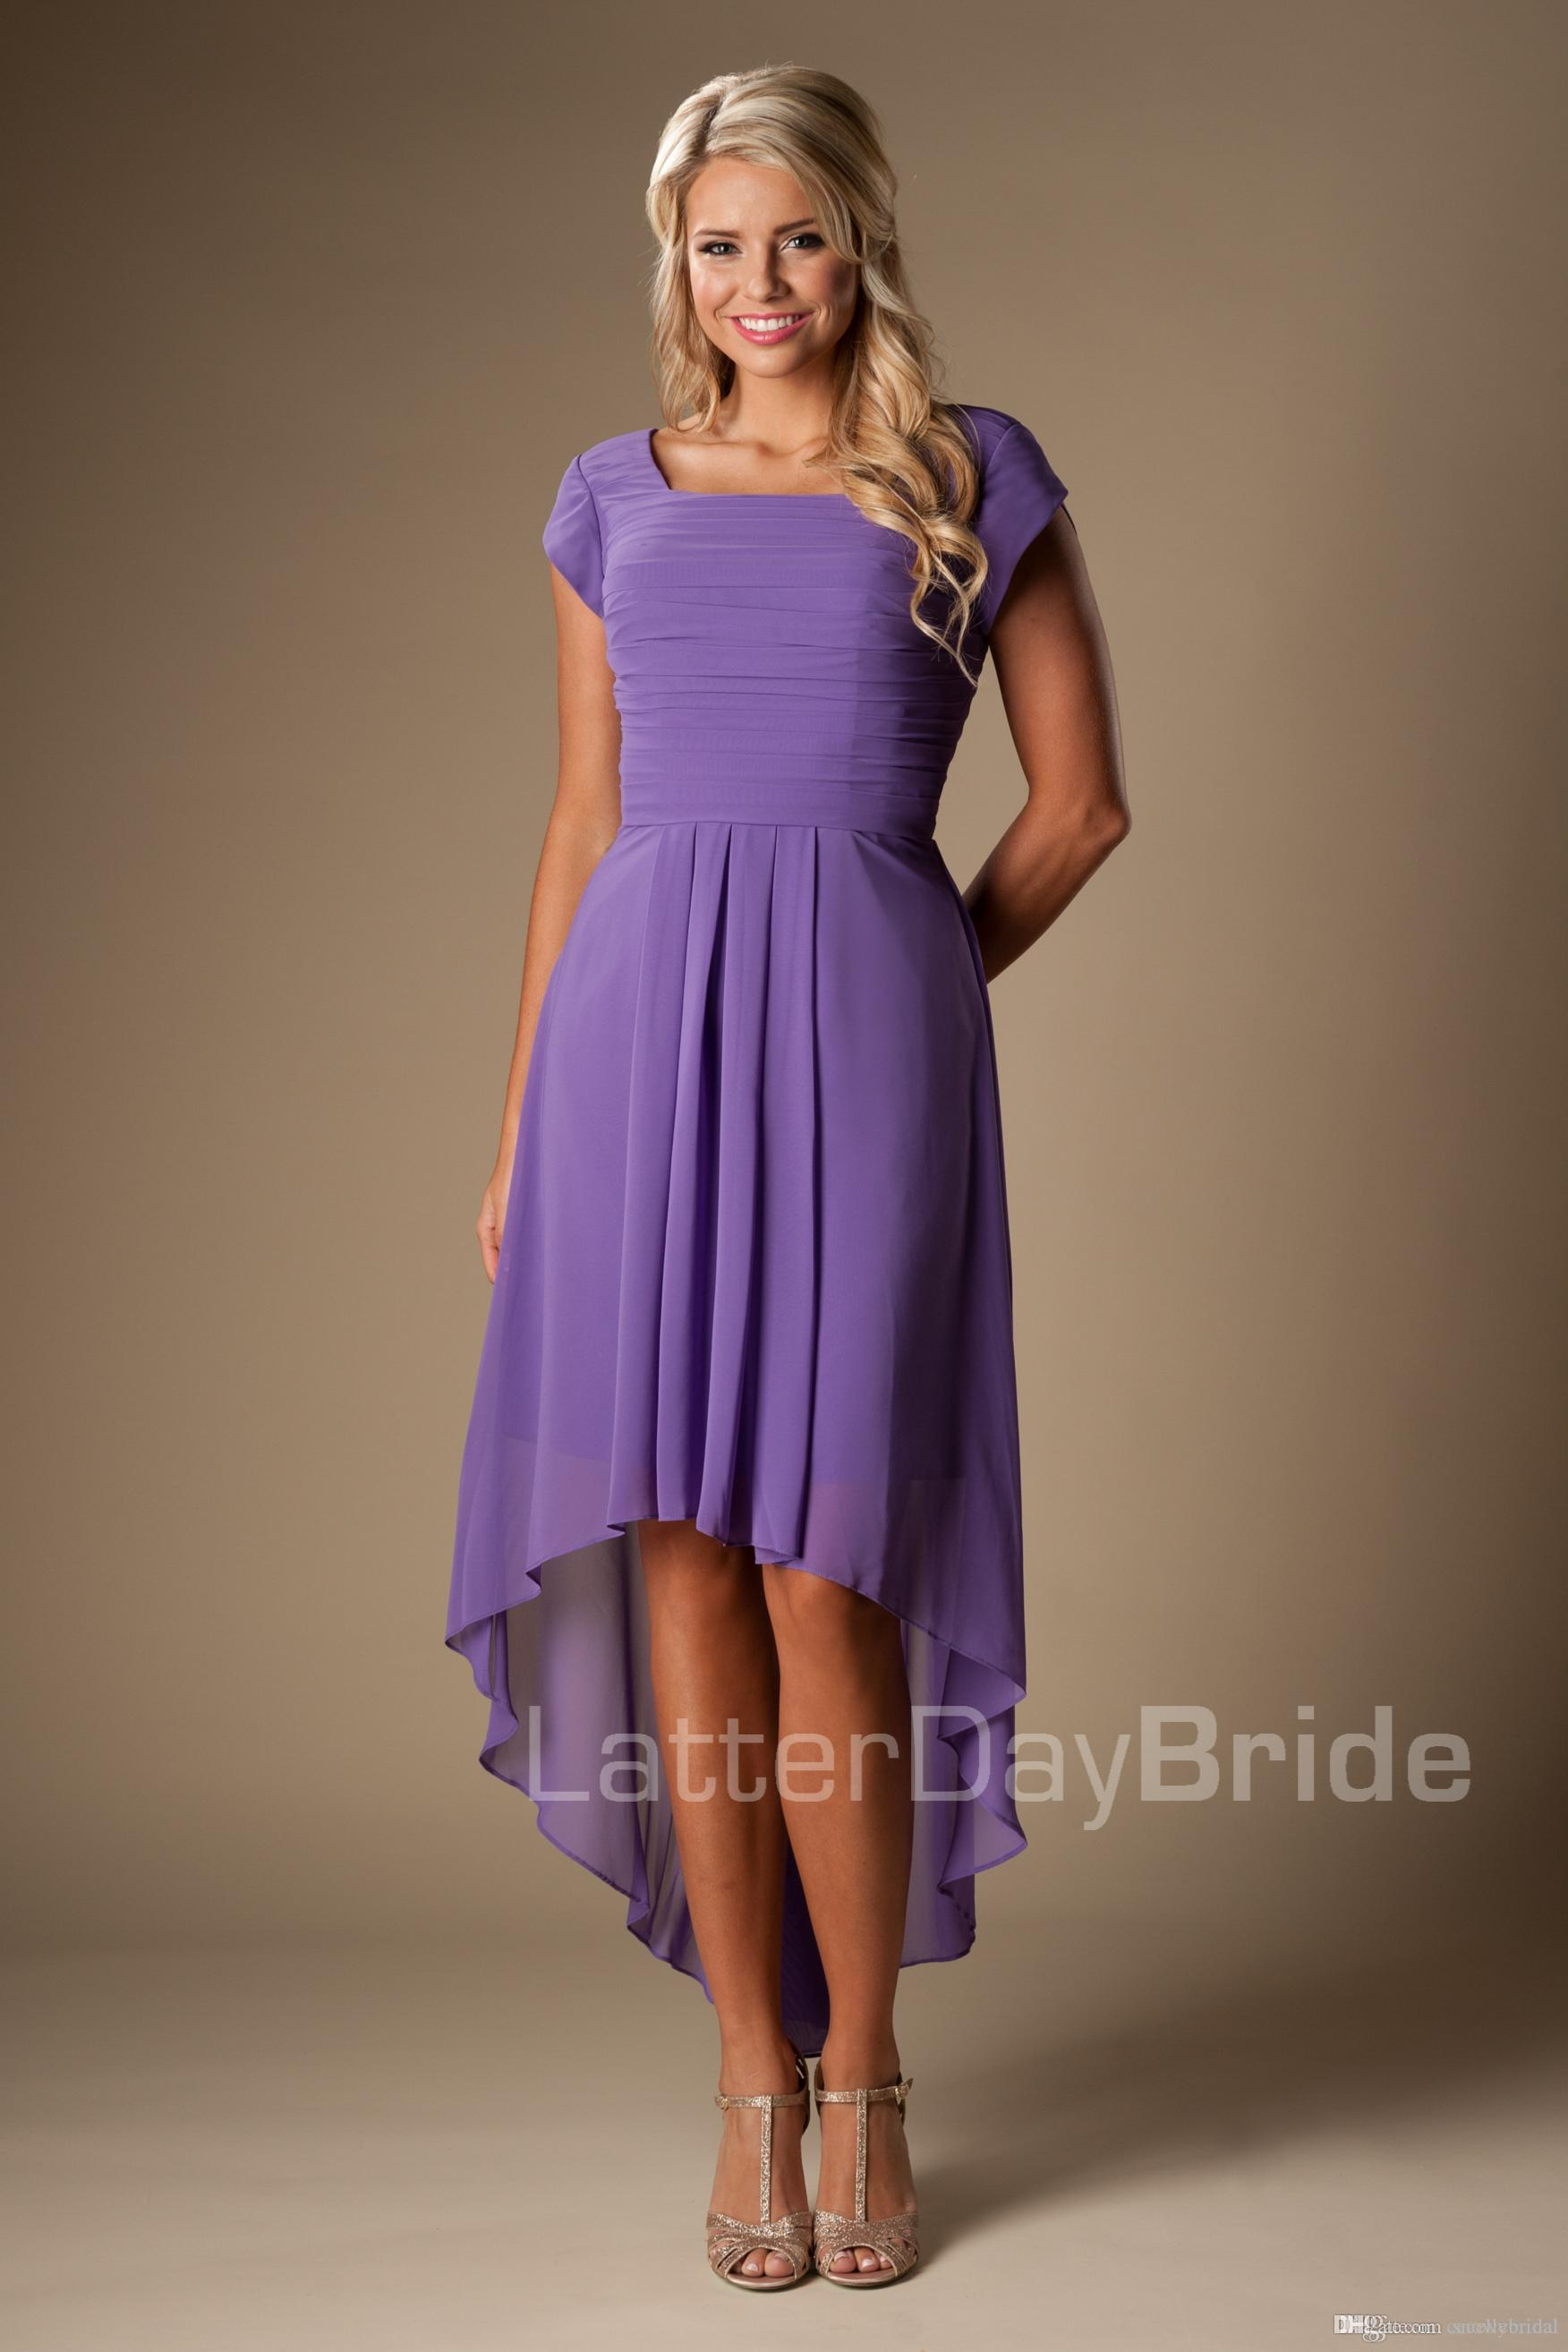 b4ed364af3 Purple High Low Hi Lo Modest Bridesmaid Dresses With Short Sleeves Short  Front Long Back Dress For Bridesmaid Country Wedding Party Dress